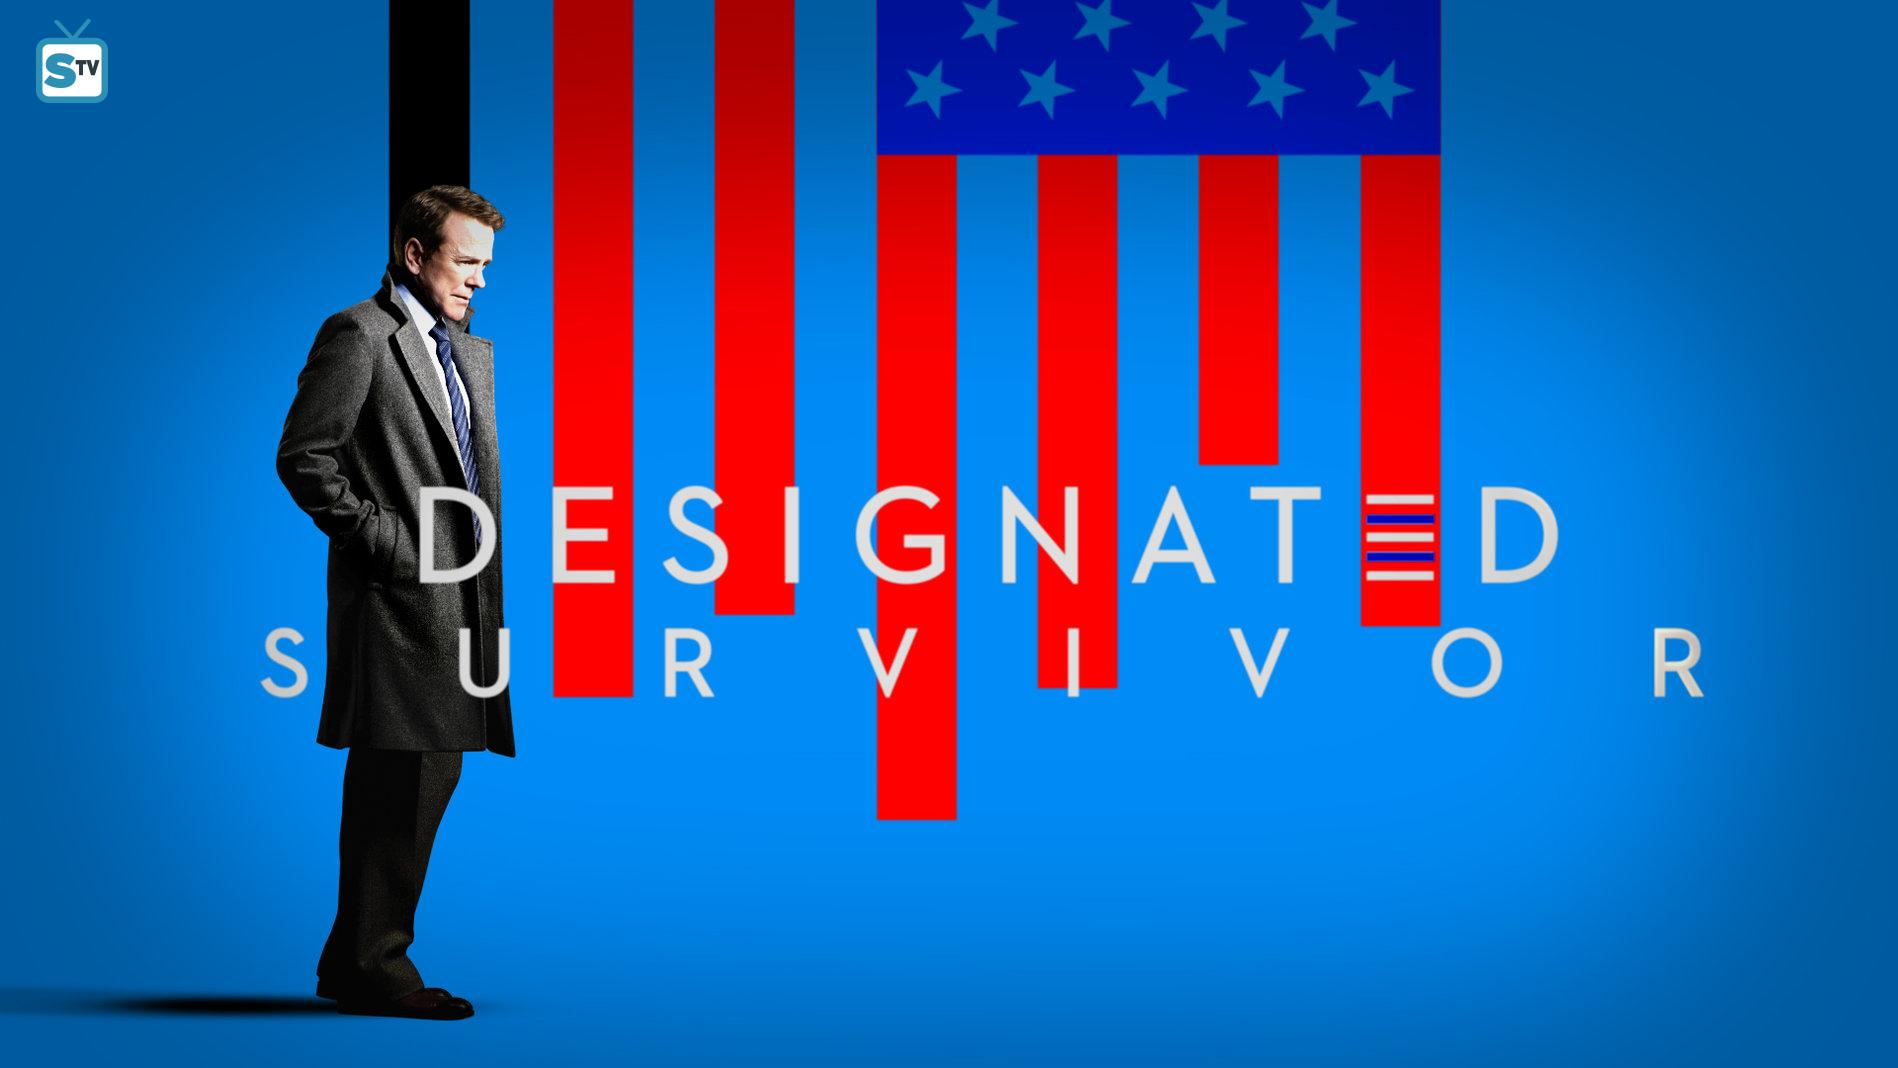 Designated-Survivor-Key-Art-designated-survivor-39619235-1898-1068.4c80cb2fee554478acf395f0947d9785